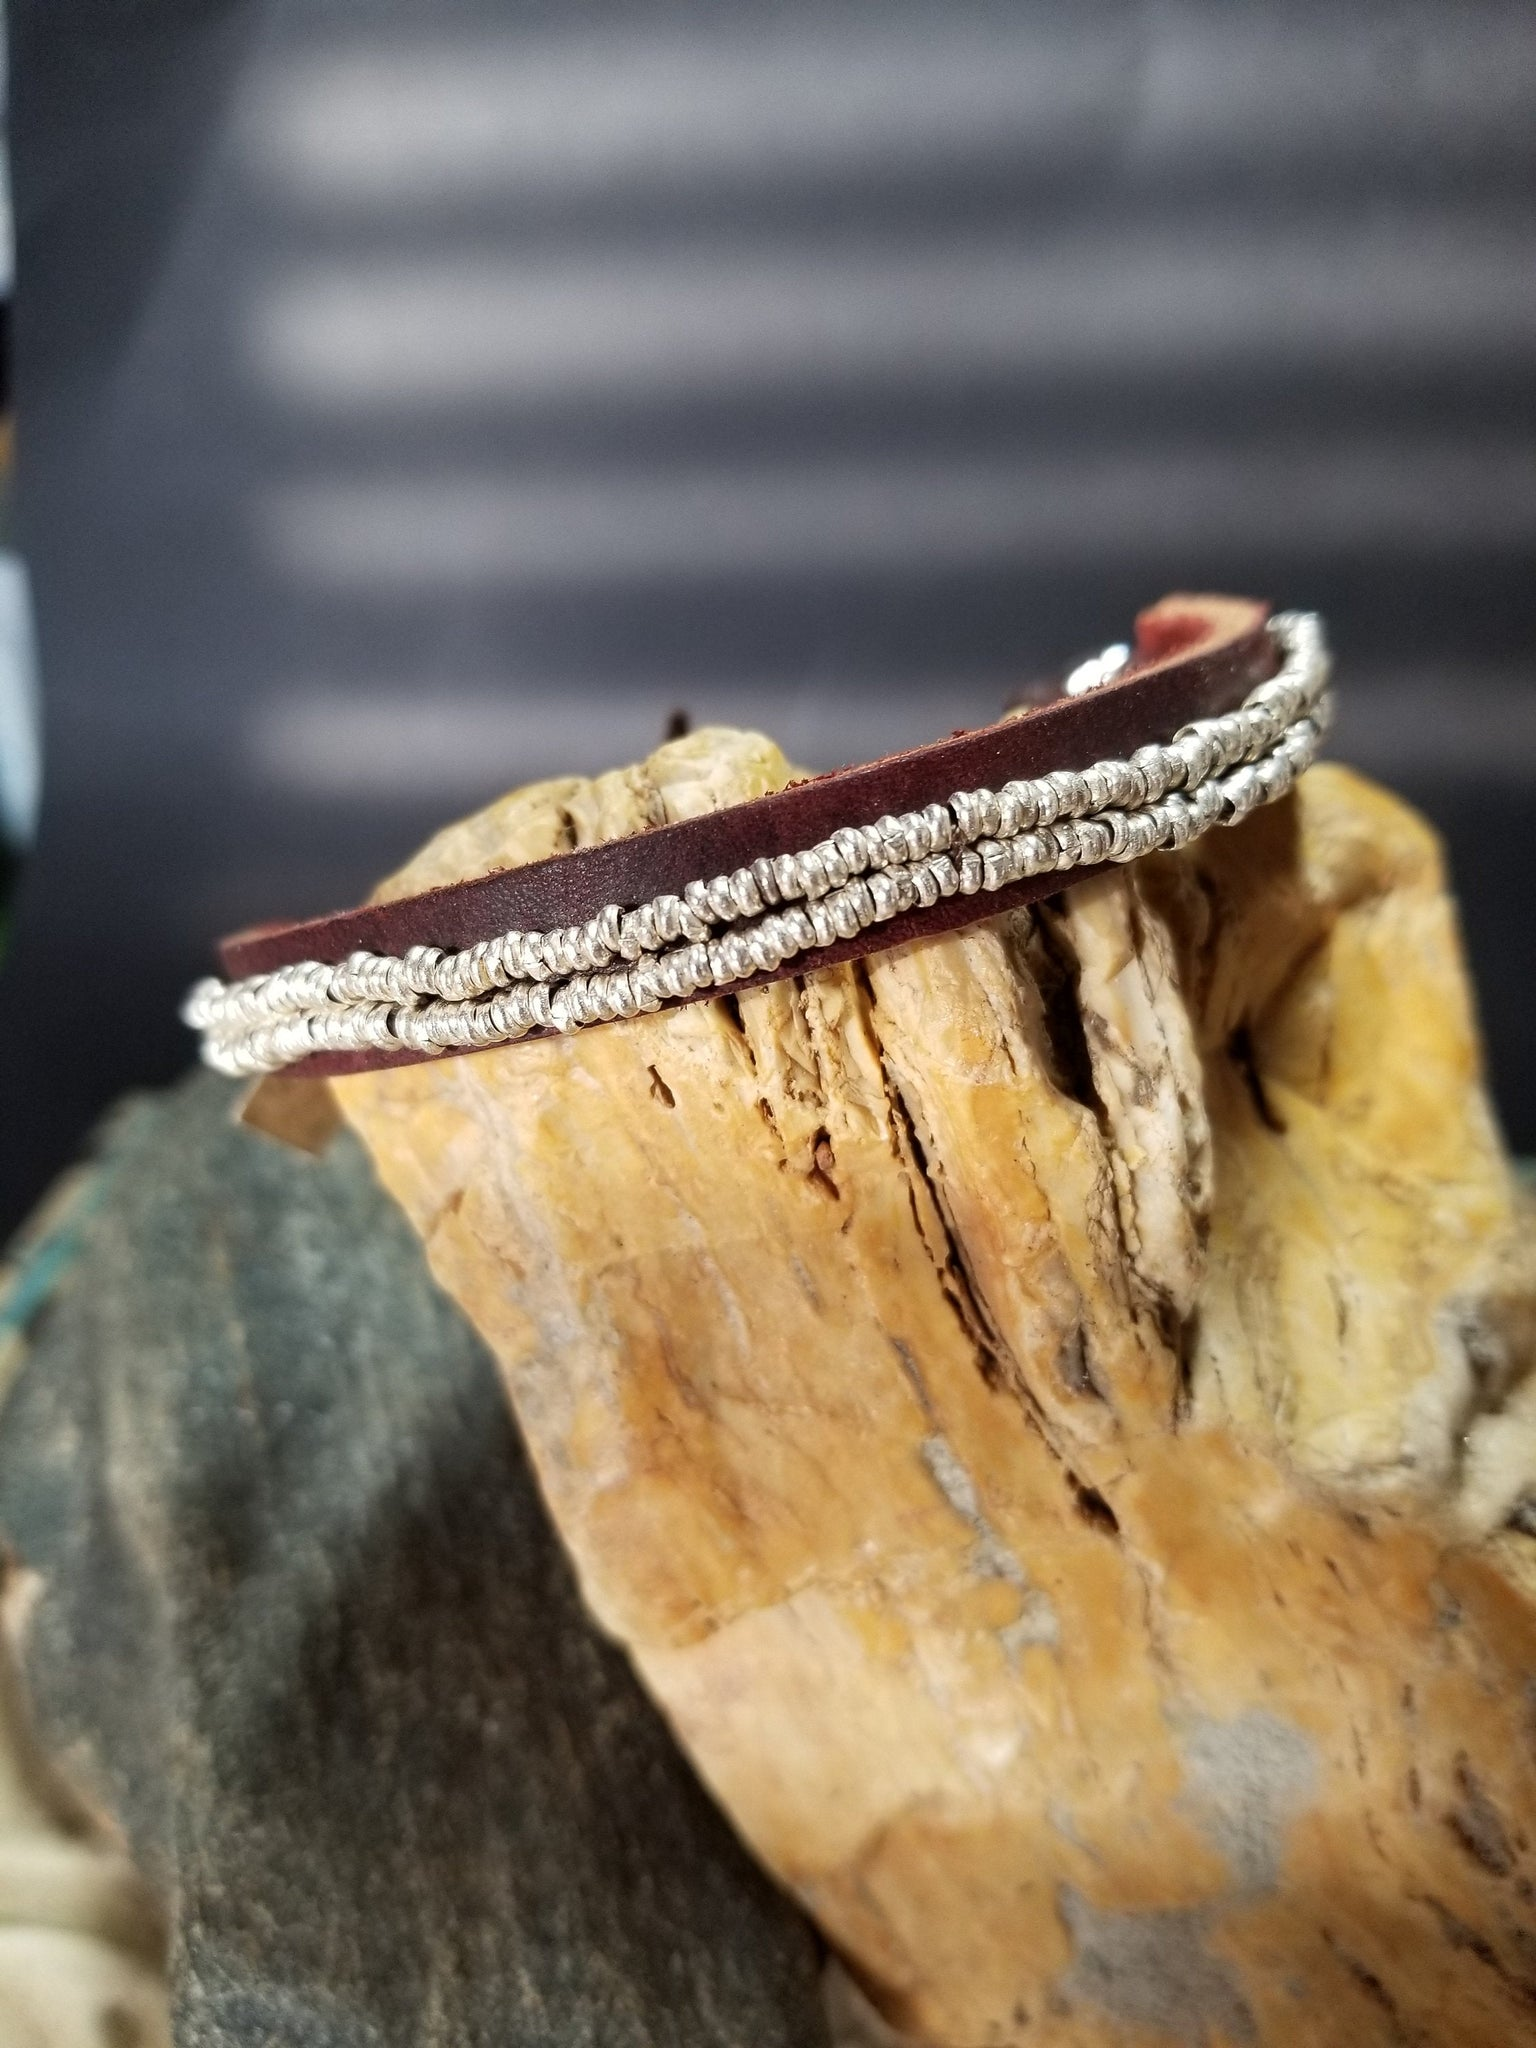 B16. cowgirl leather jewelry - cowgirl silver jewelr - ethnic silver jewelry - contemporary jewelry design - Red Dirt Diva